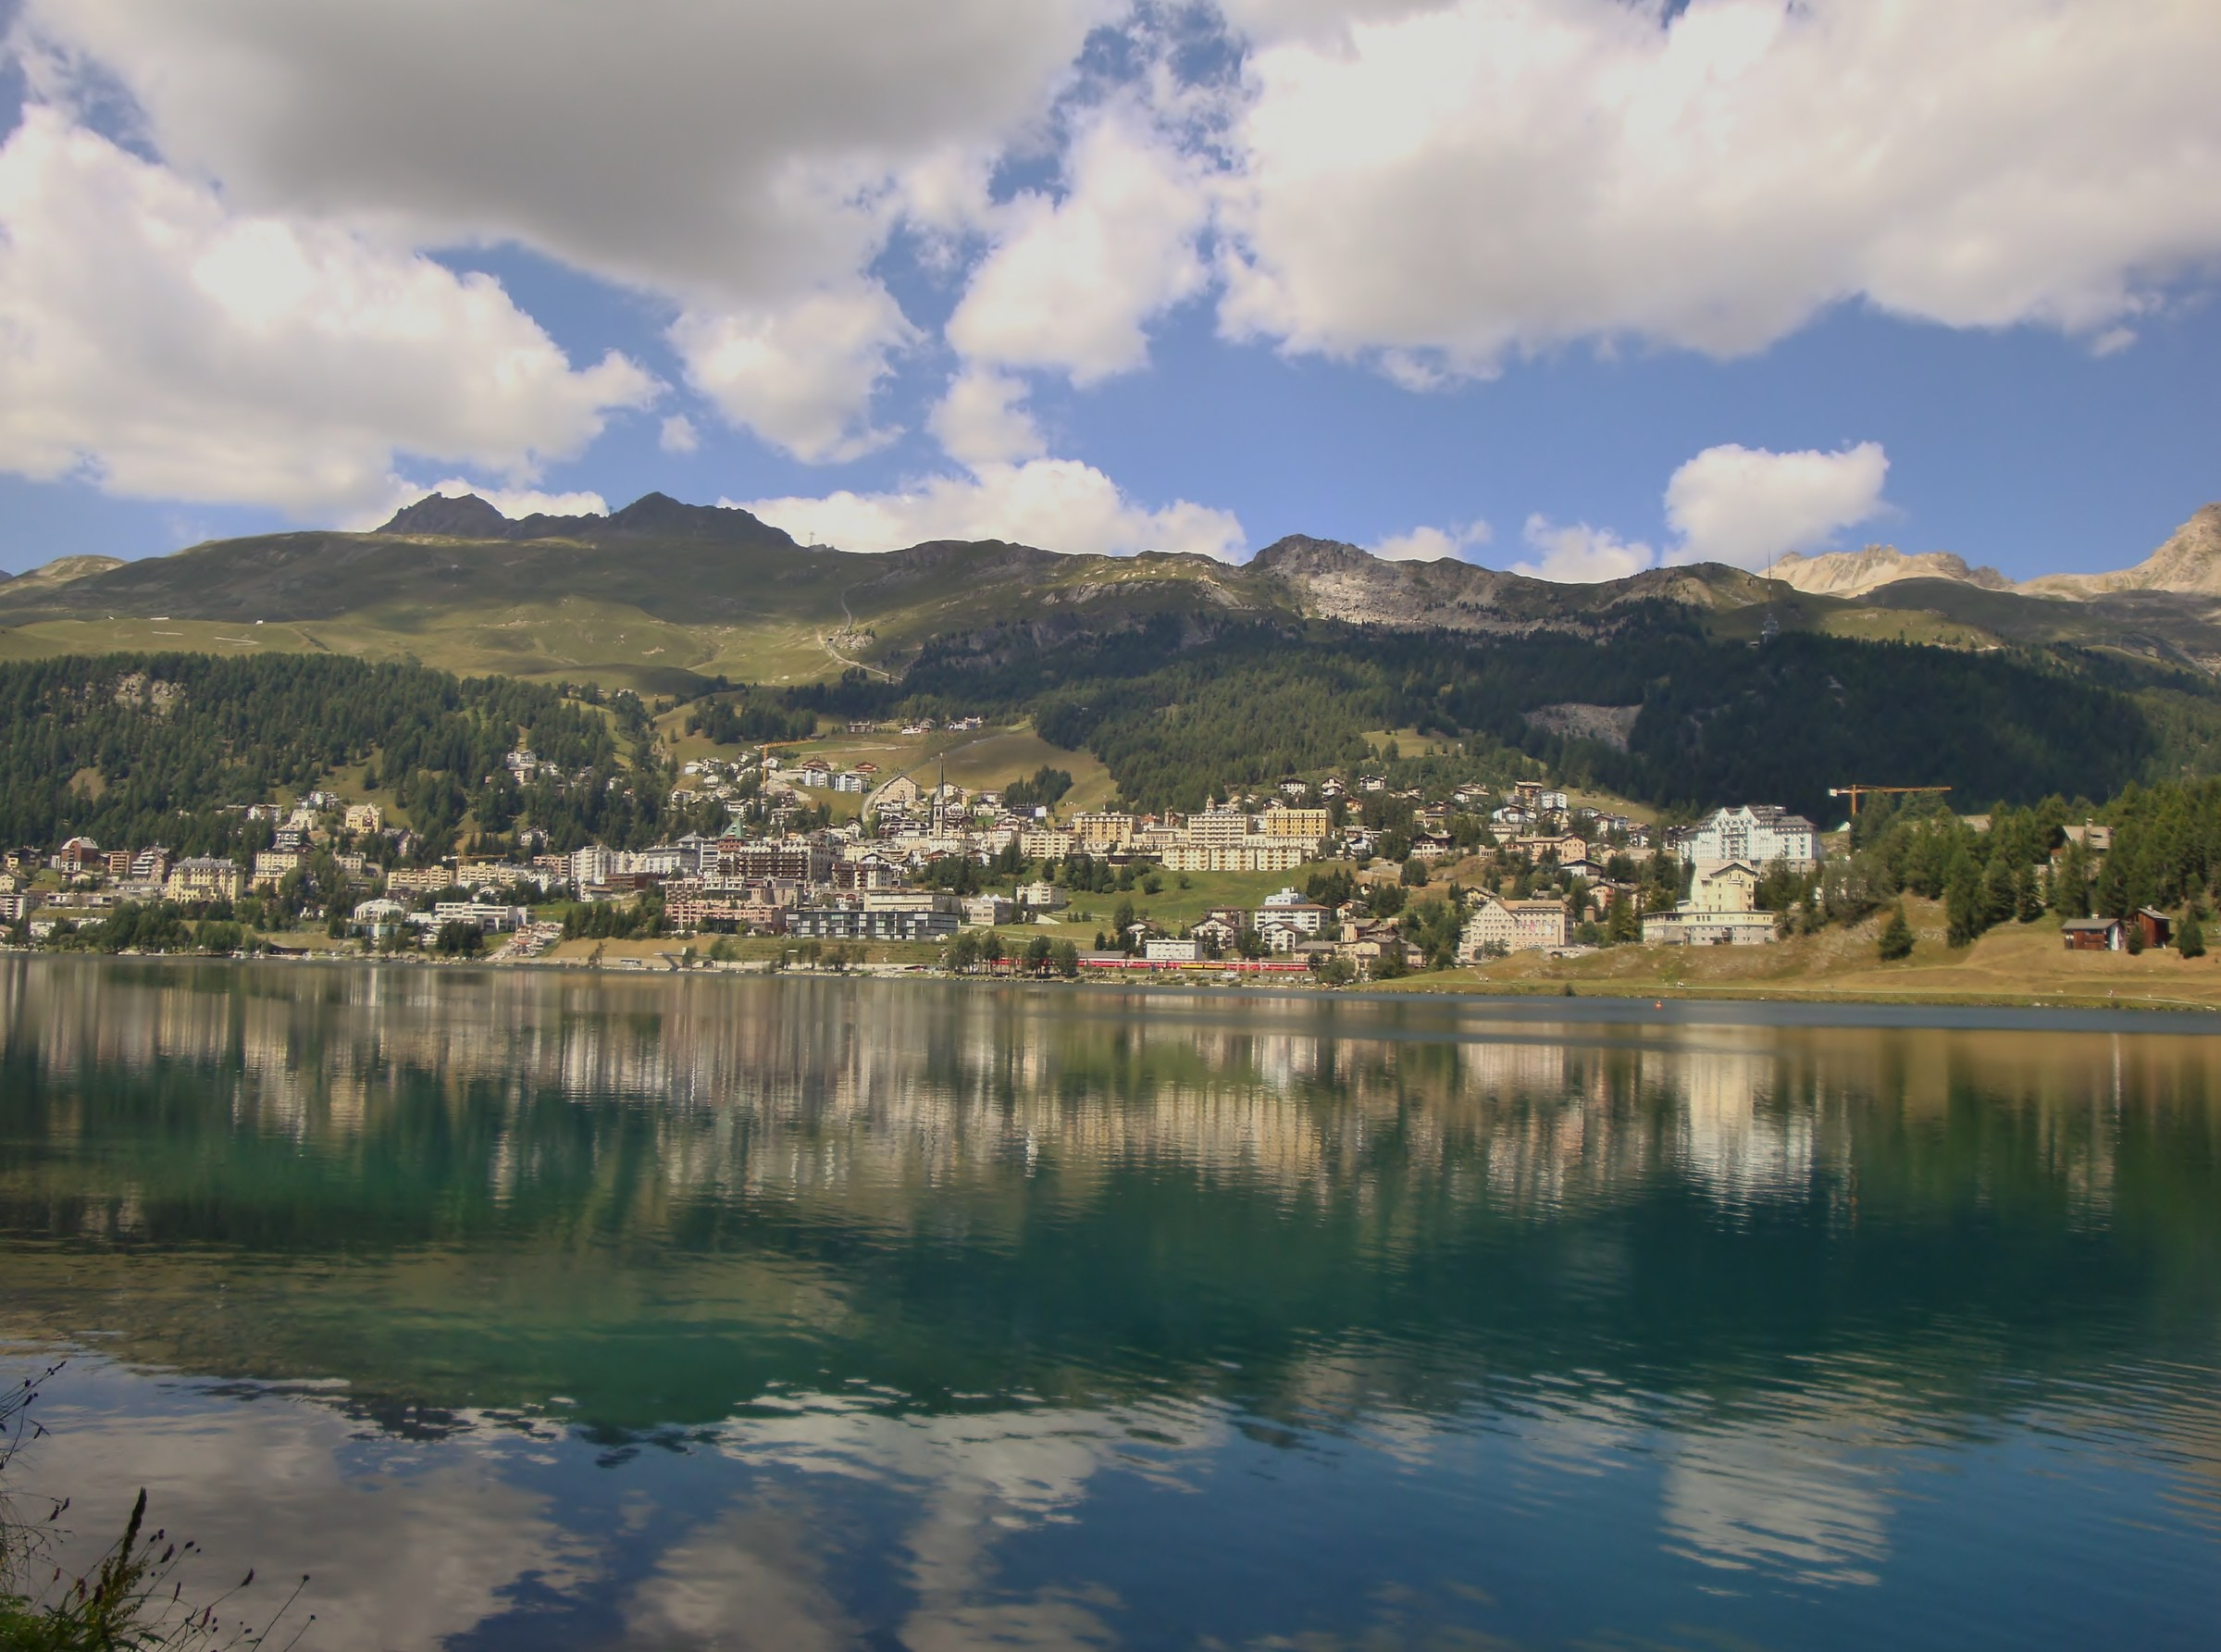 St. Moritz and its little train...